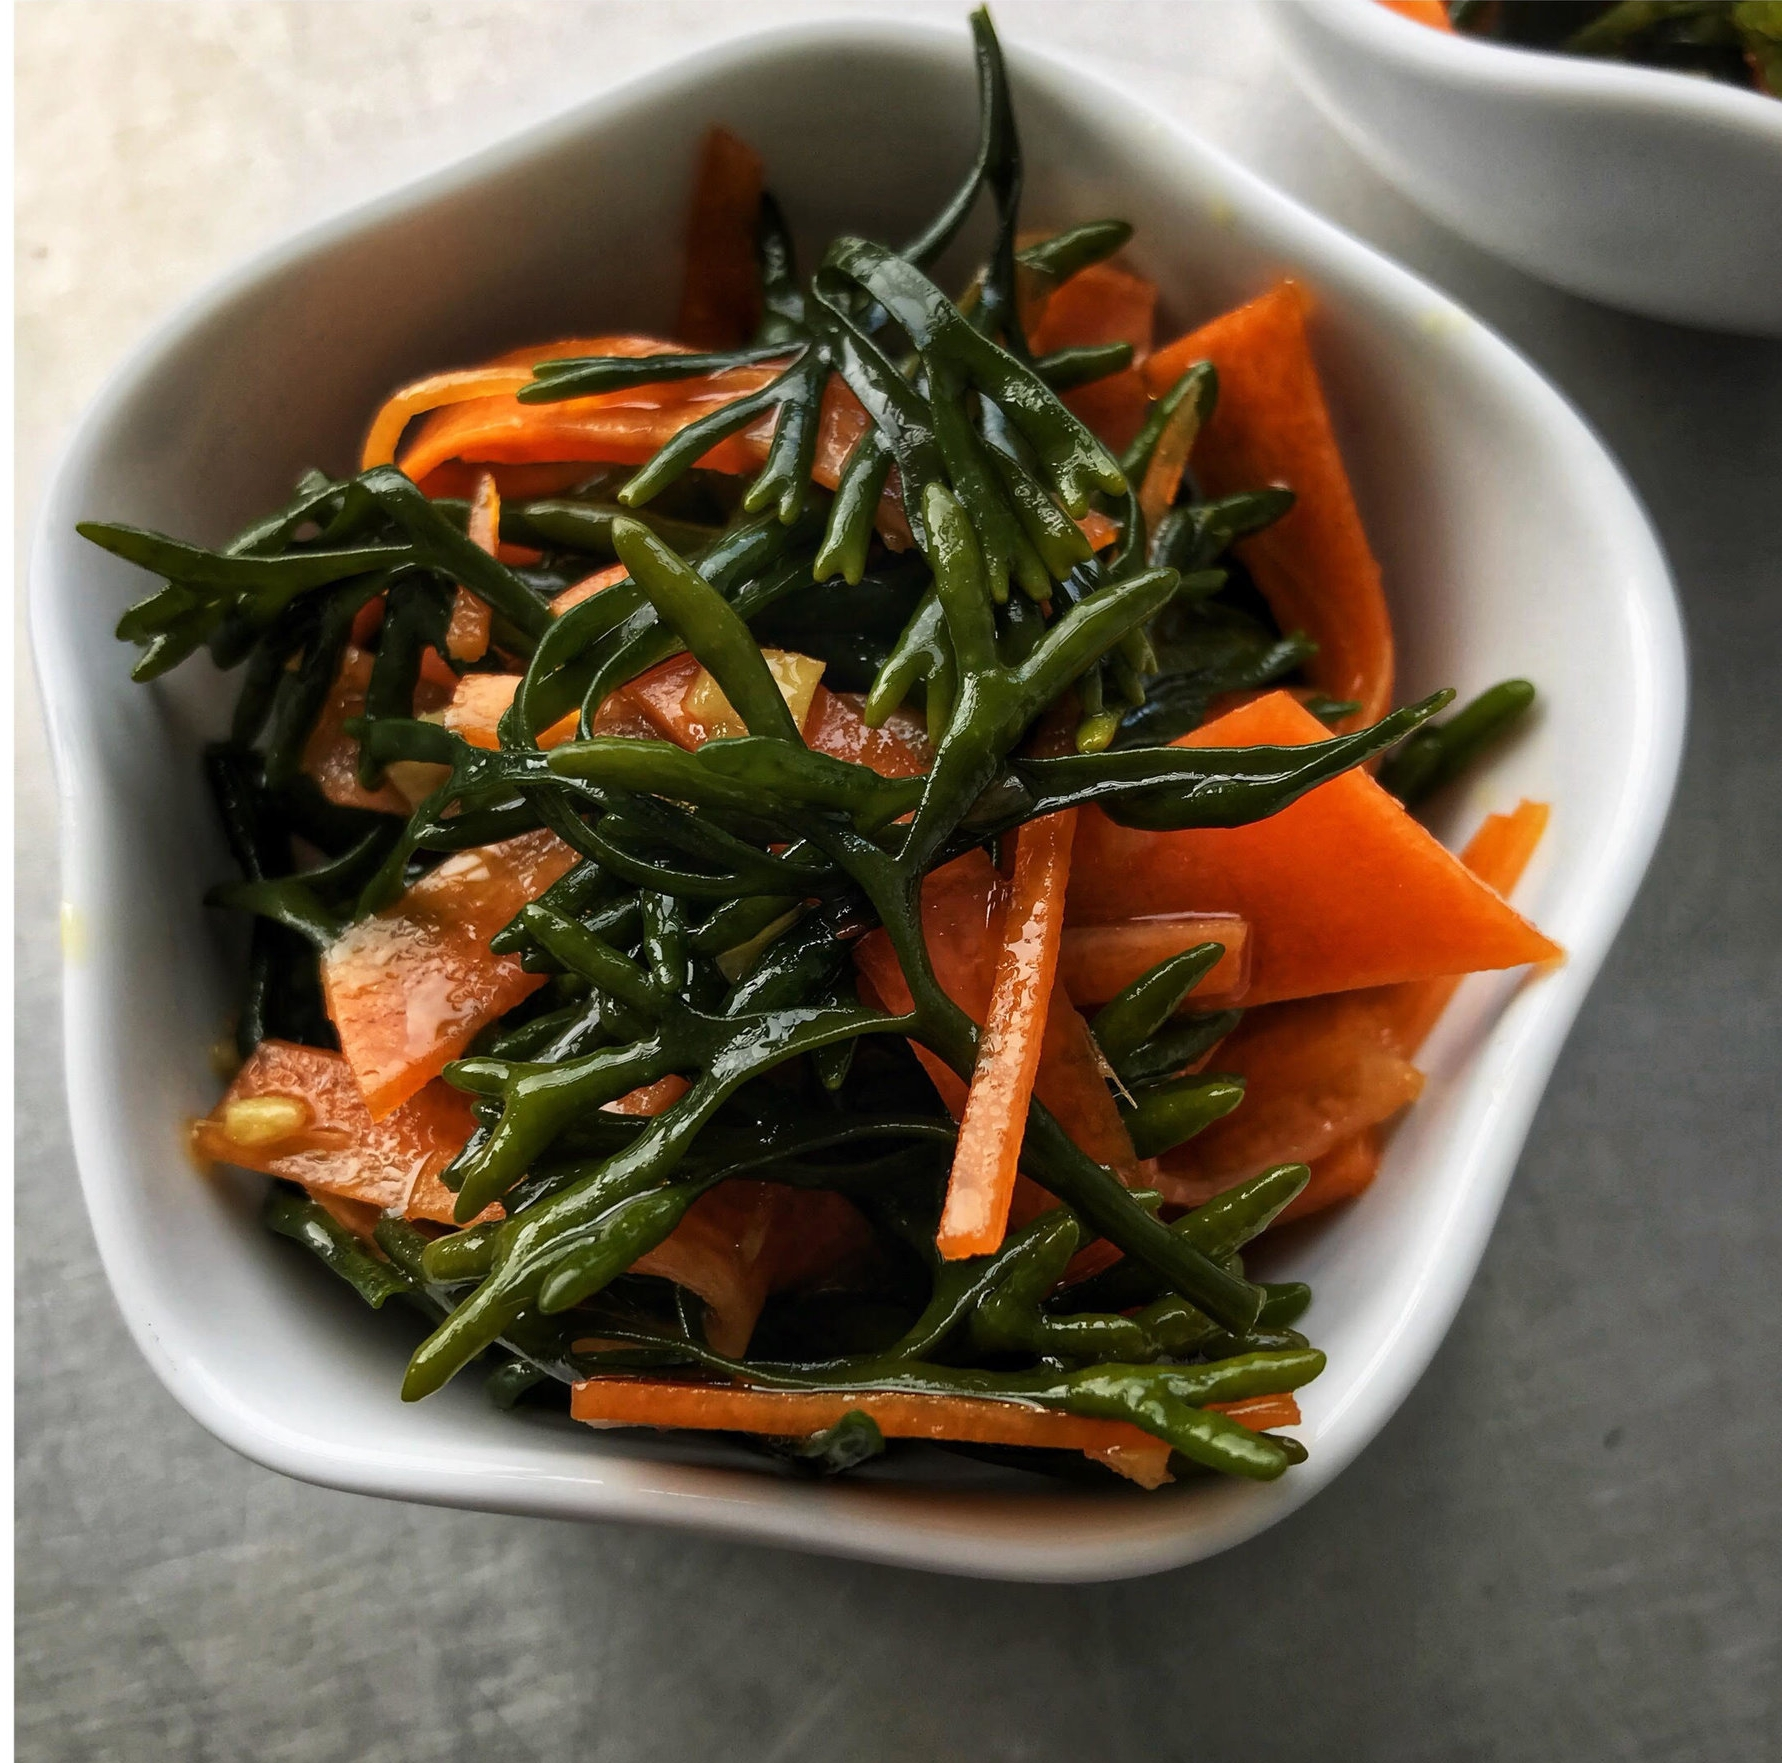 Channel Wrack Salad - with an Asian inspired dressing